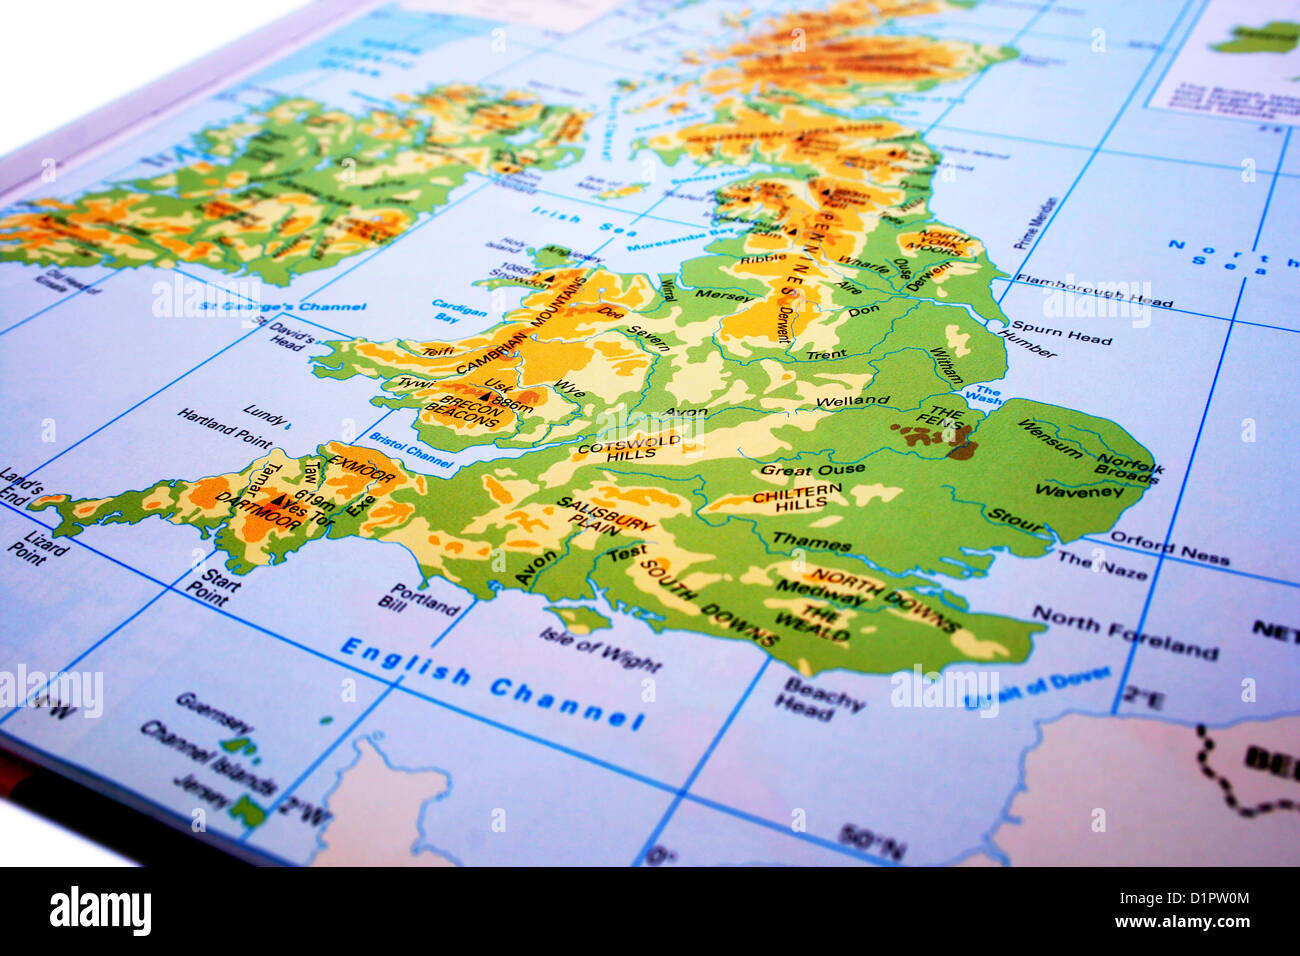 Map Of Uk Mountains And Rivers.United Kingdom Map Mountains Rivers Stock Photo 52748324 Alamy